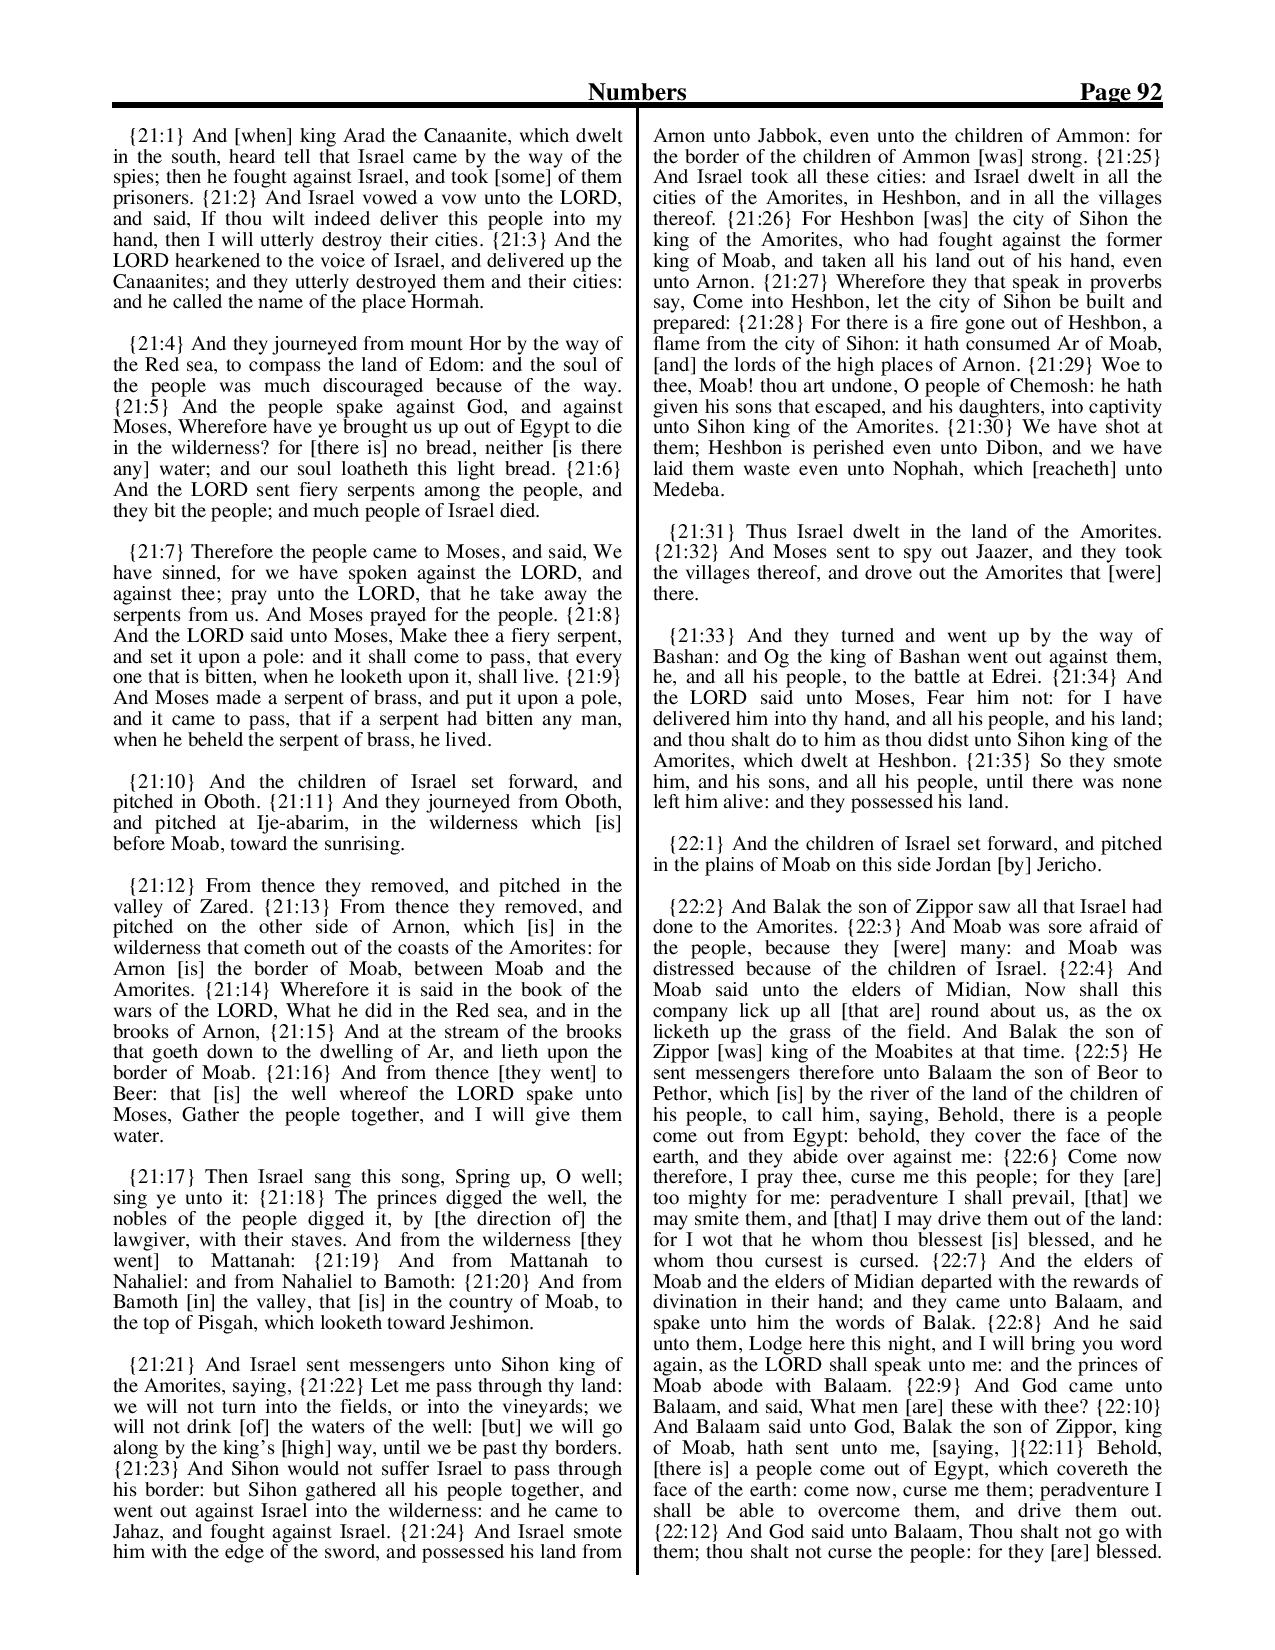 King-James-Bible-KJV-Bible-PDF-page-113